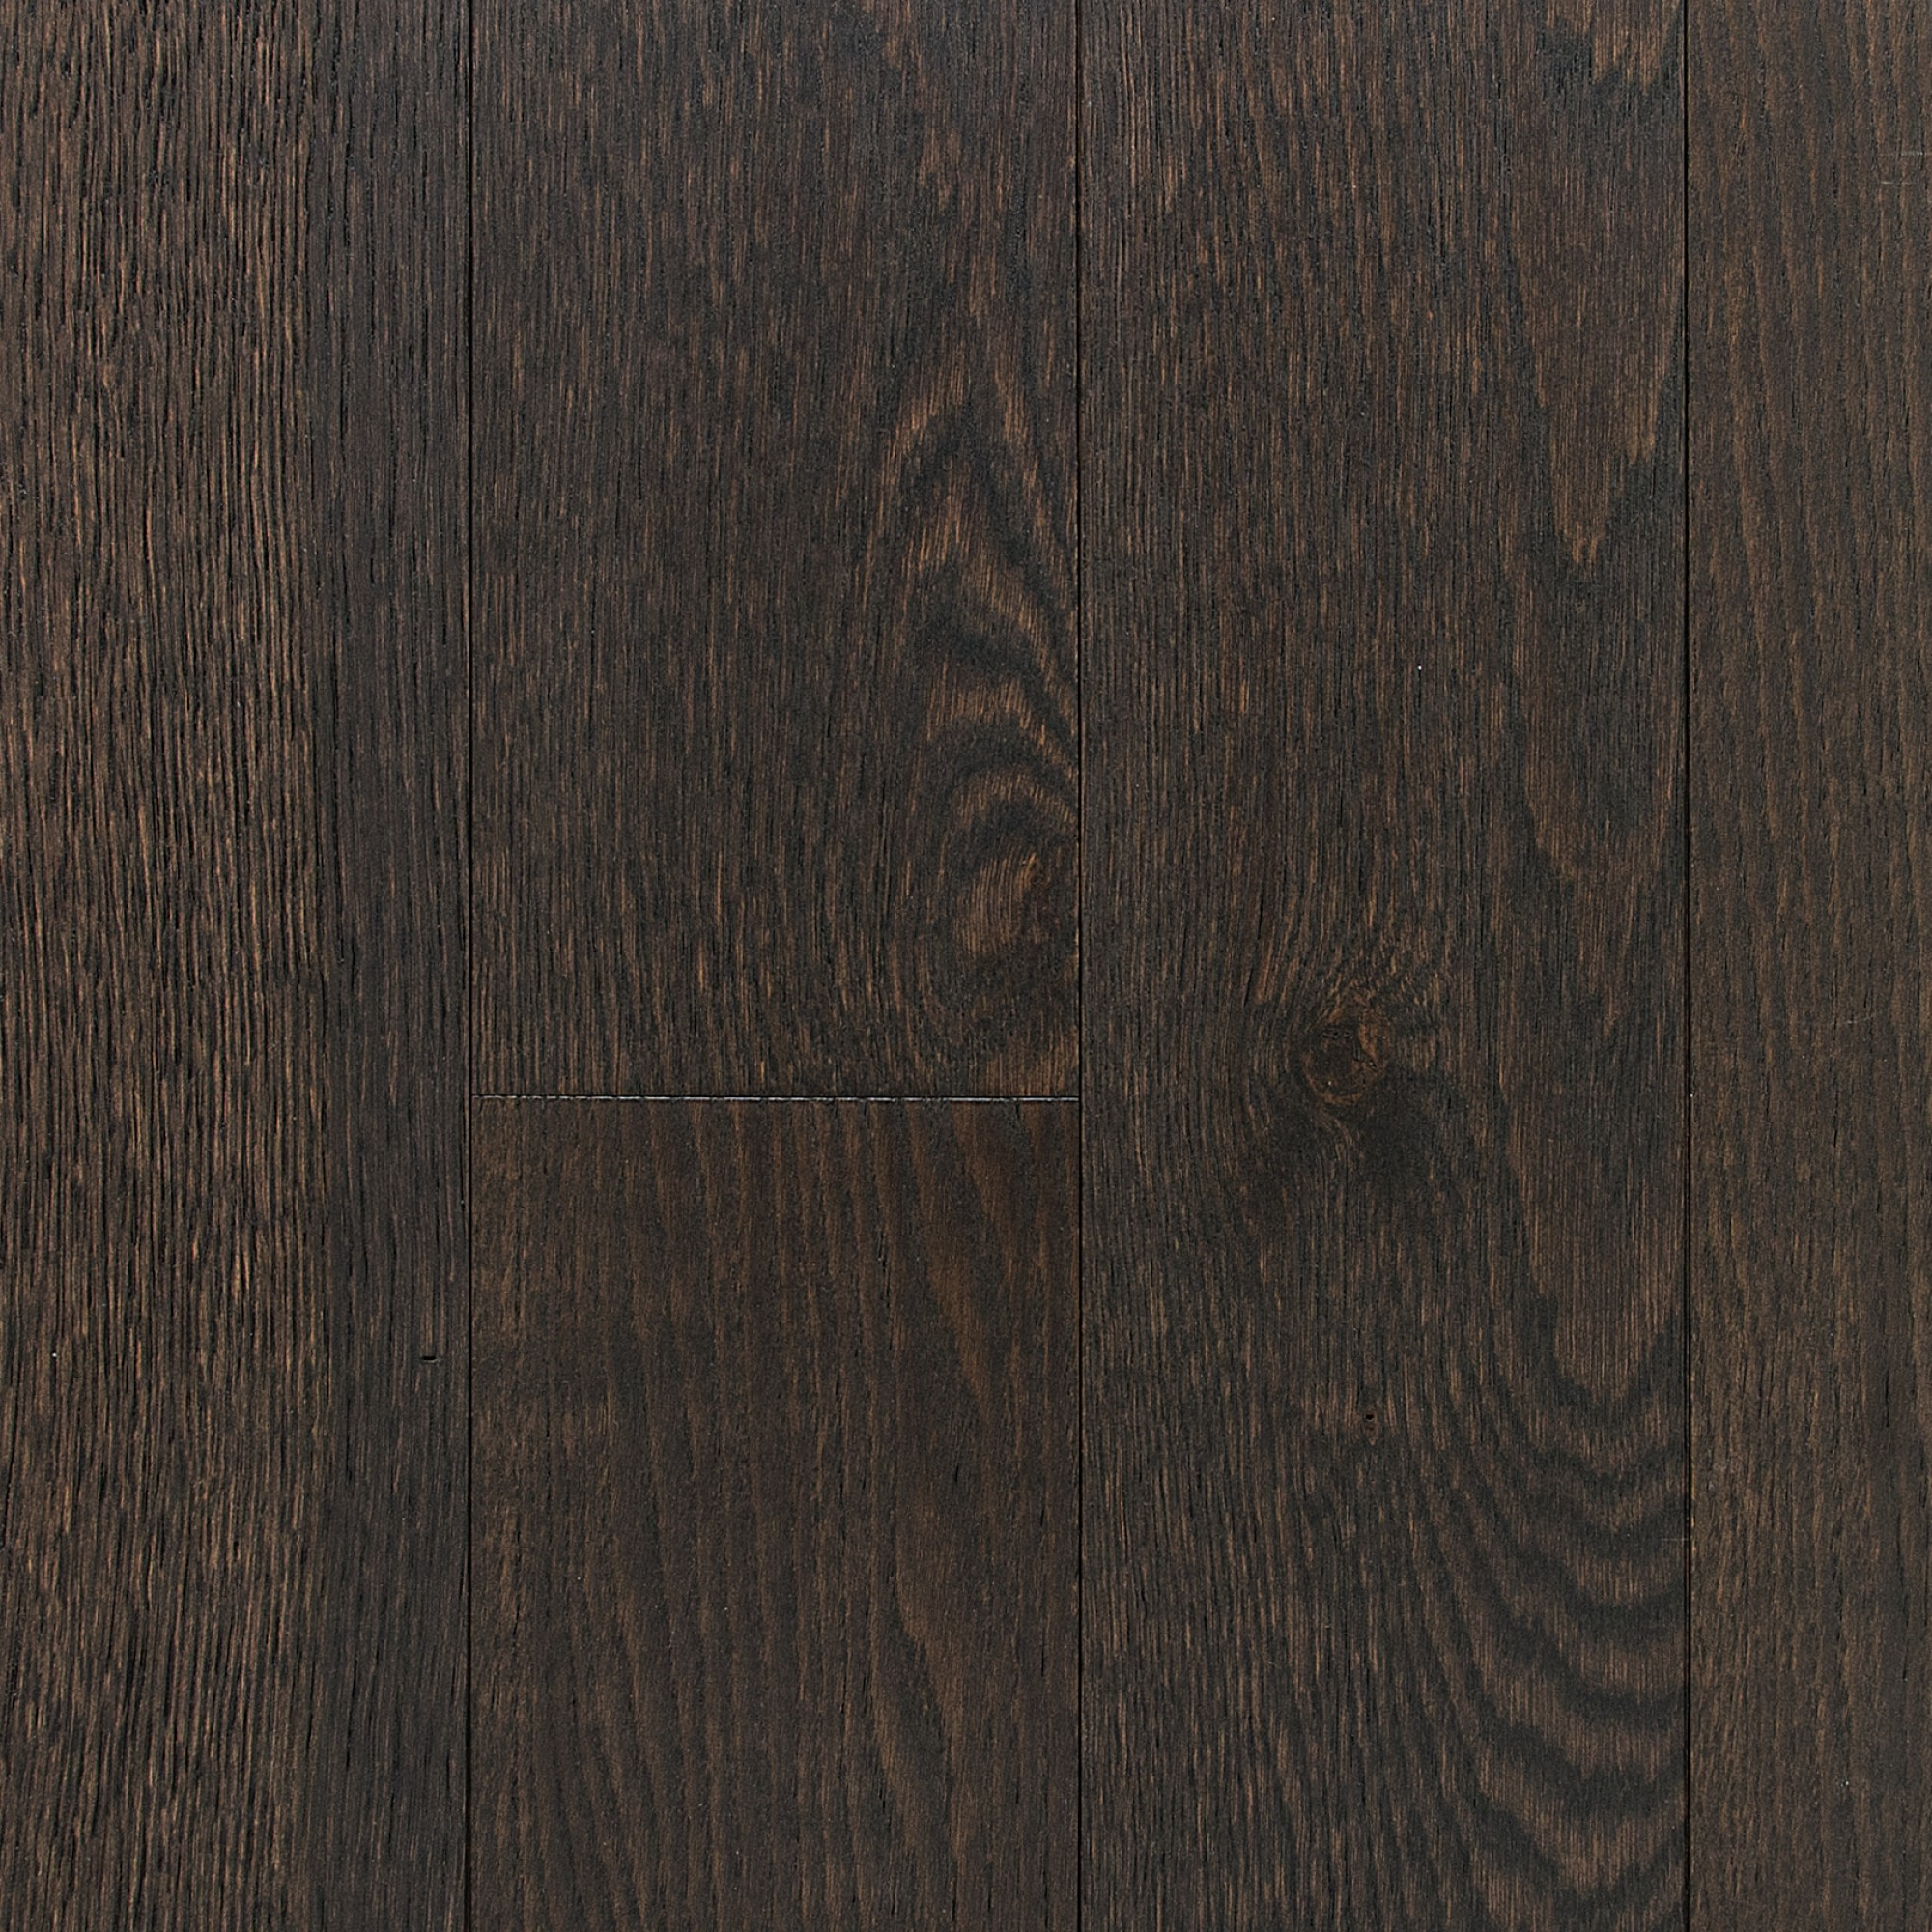 Wire Brushed, White Oak Baroque | Vintage Hardwood ...